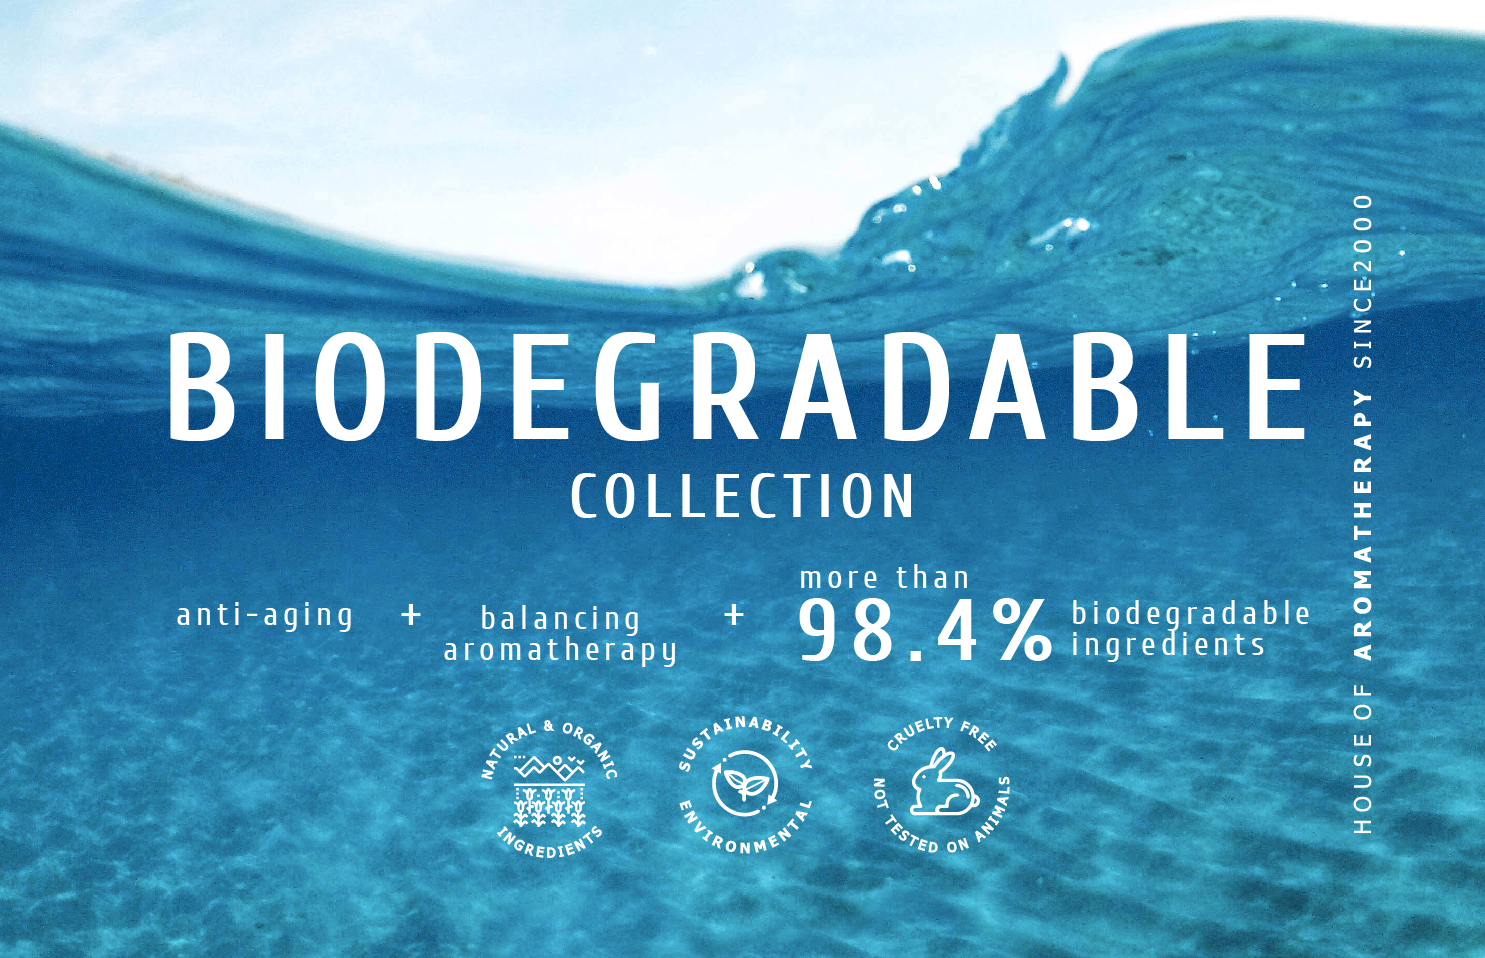 BIODEGRADABLE COLLECTION